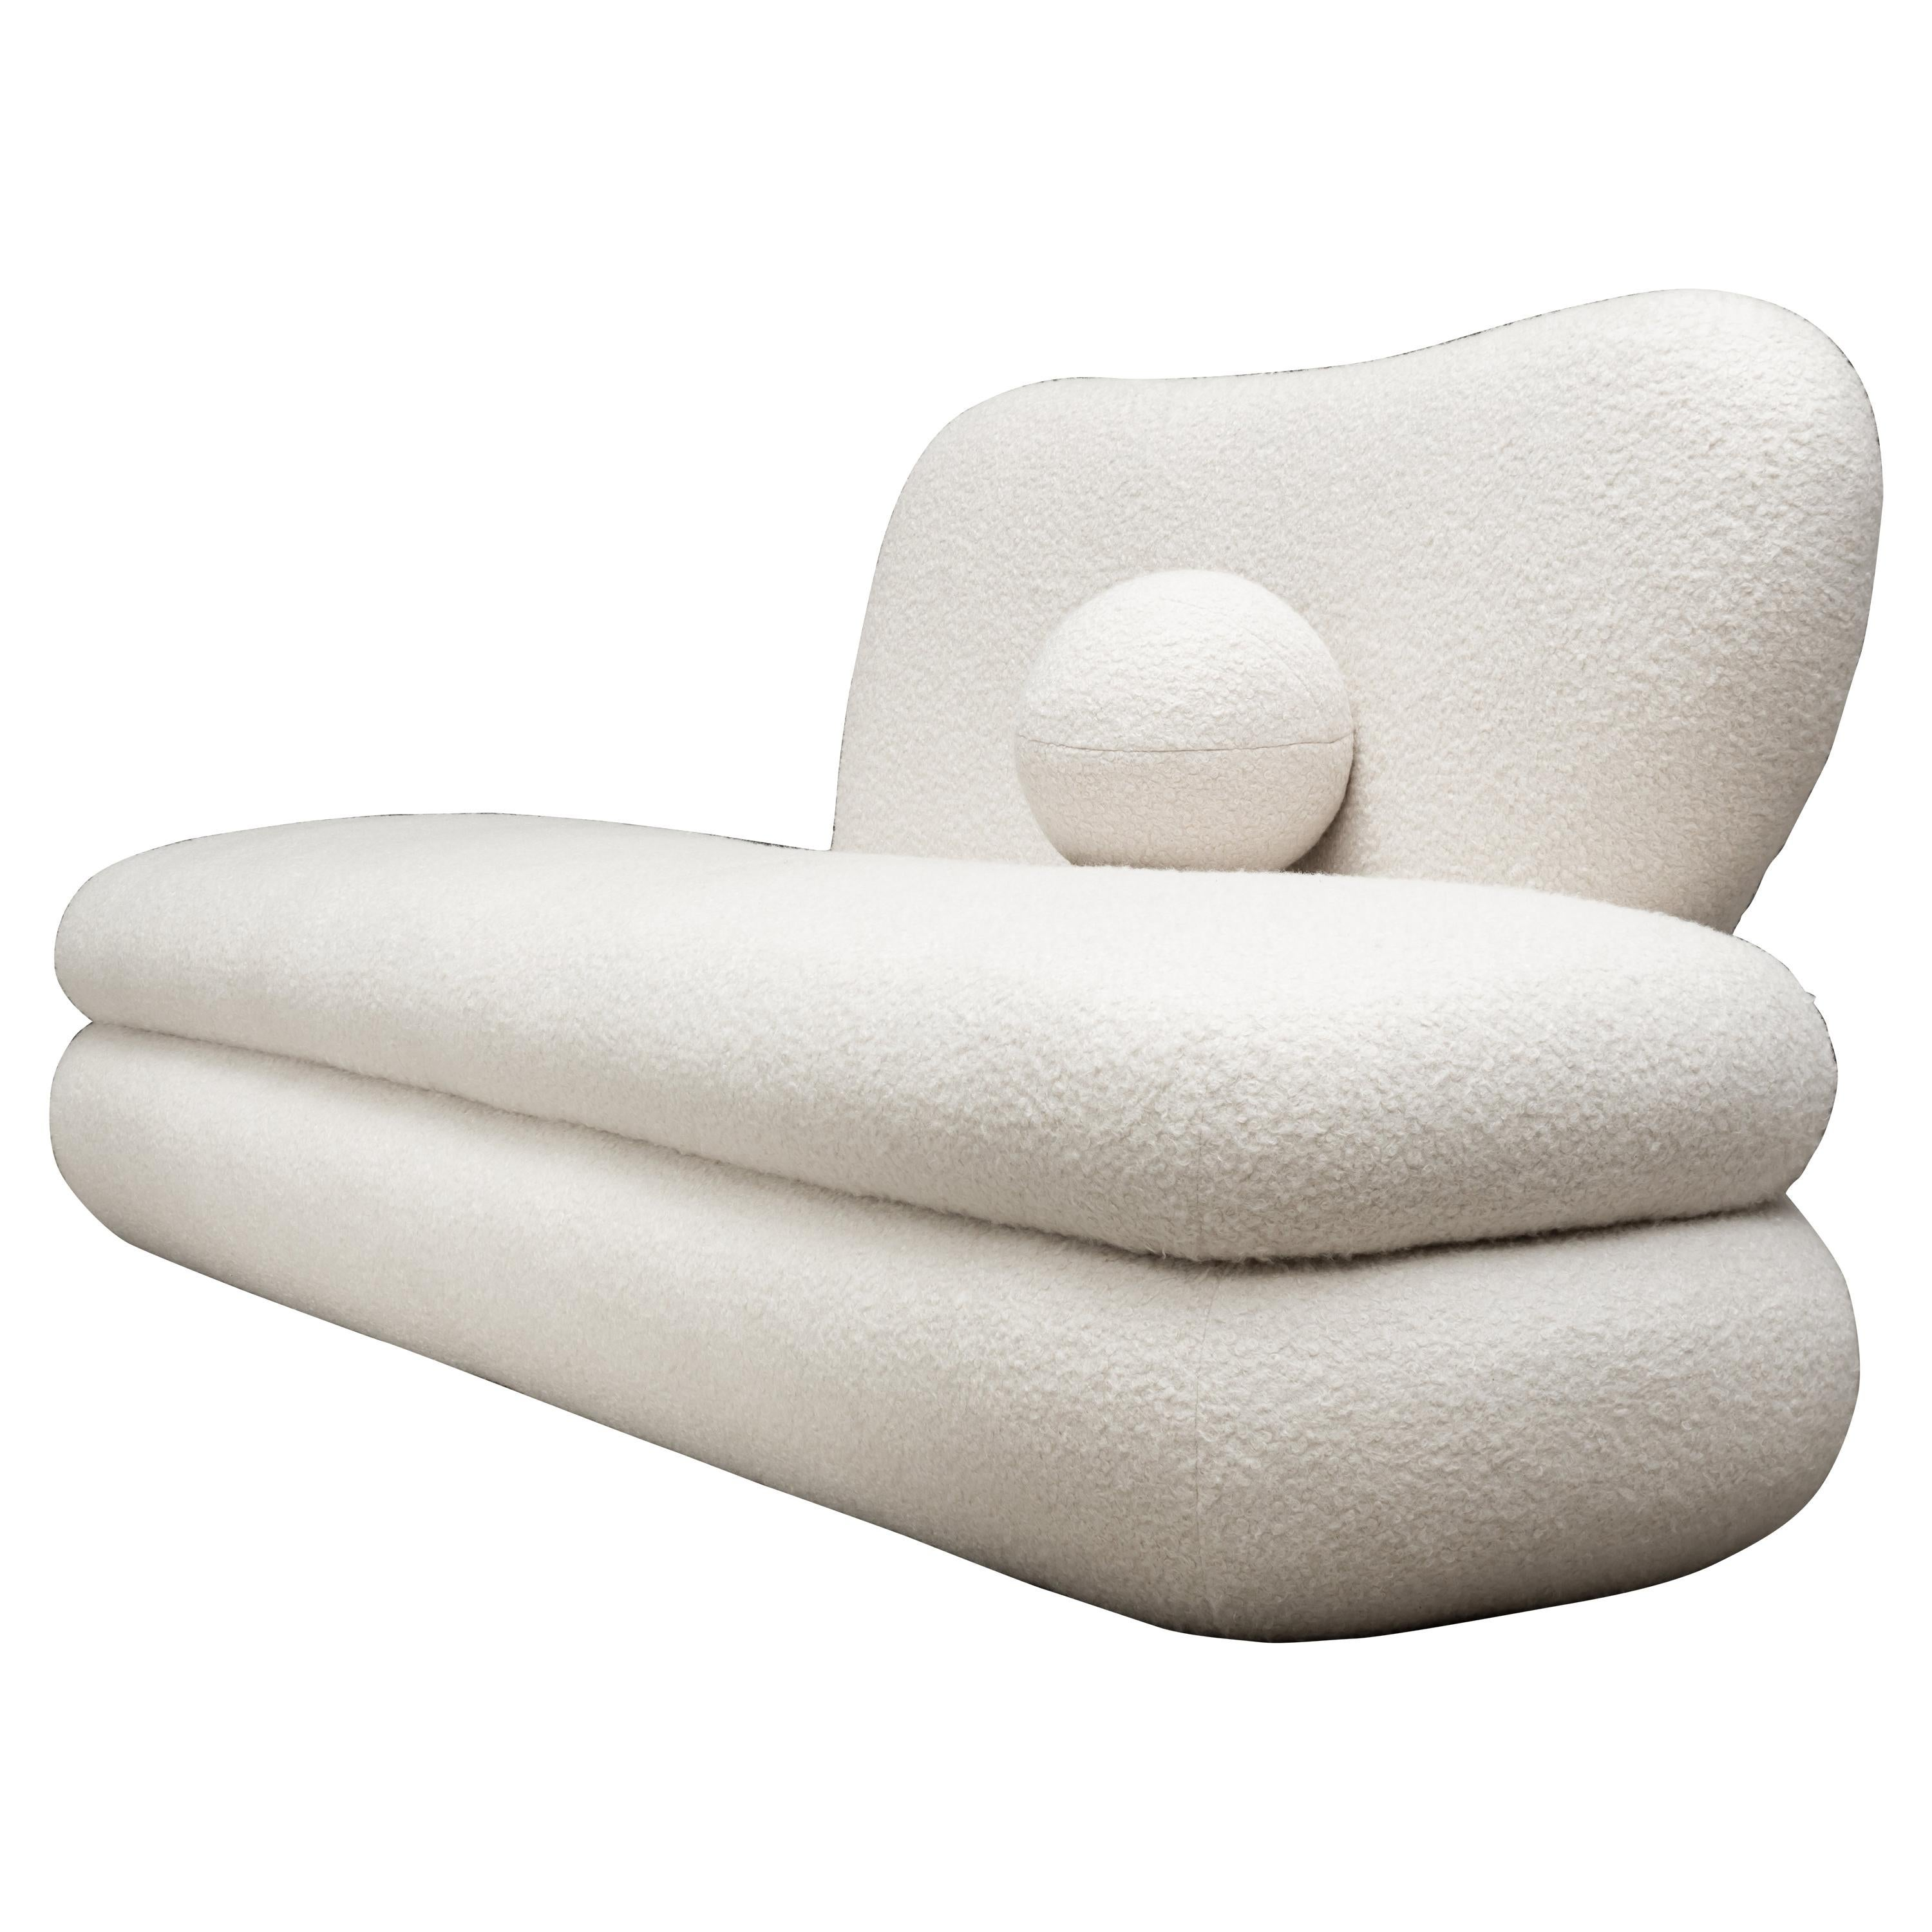 Curve Chaise, Modern Layered Asymmetrical Chaise in Cream Boucle